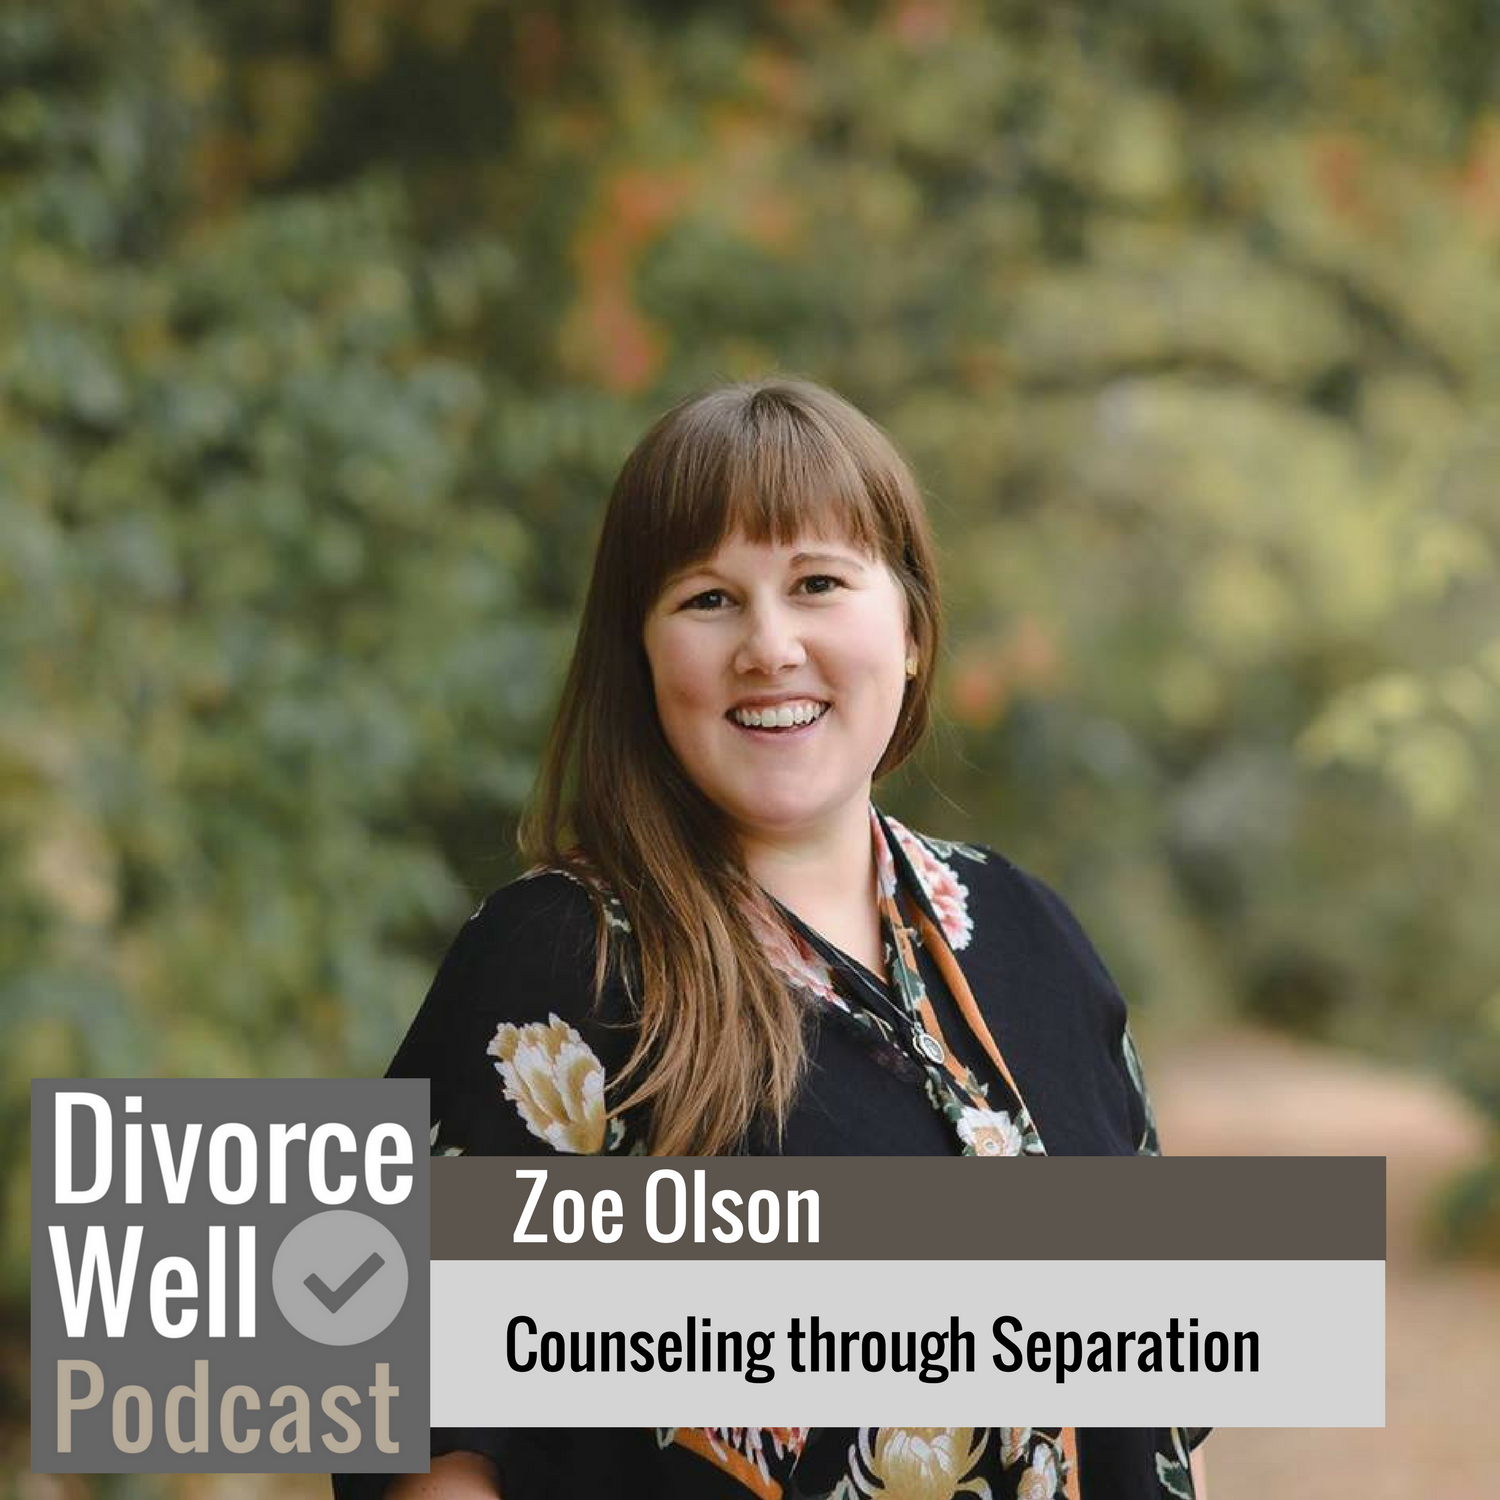 The Divorce Well Podcast - 08 - Counseling through Separation with Zoe Olson